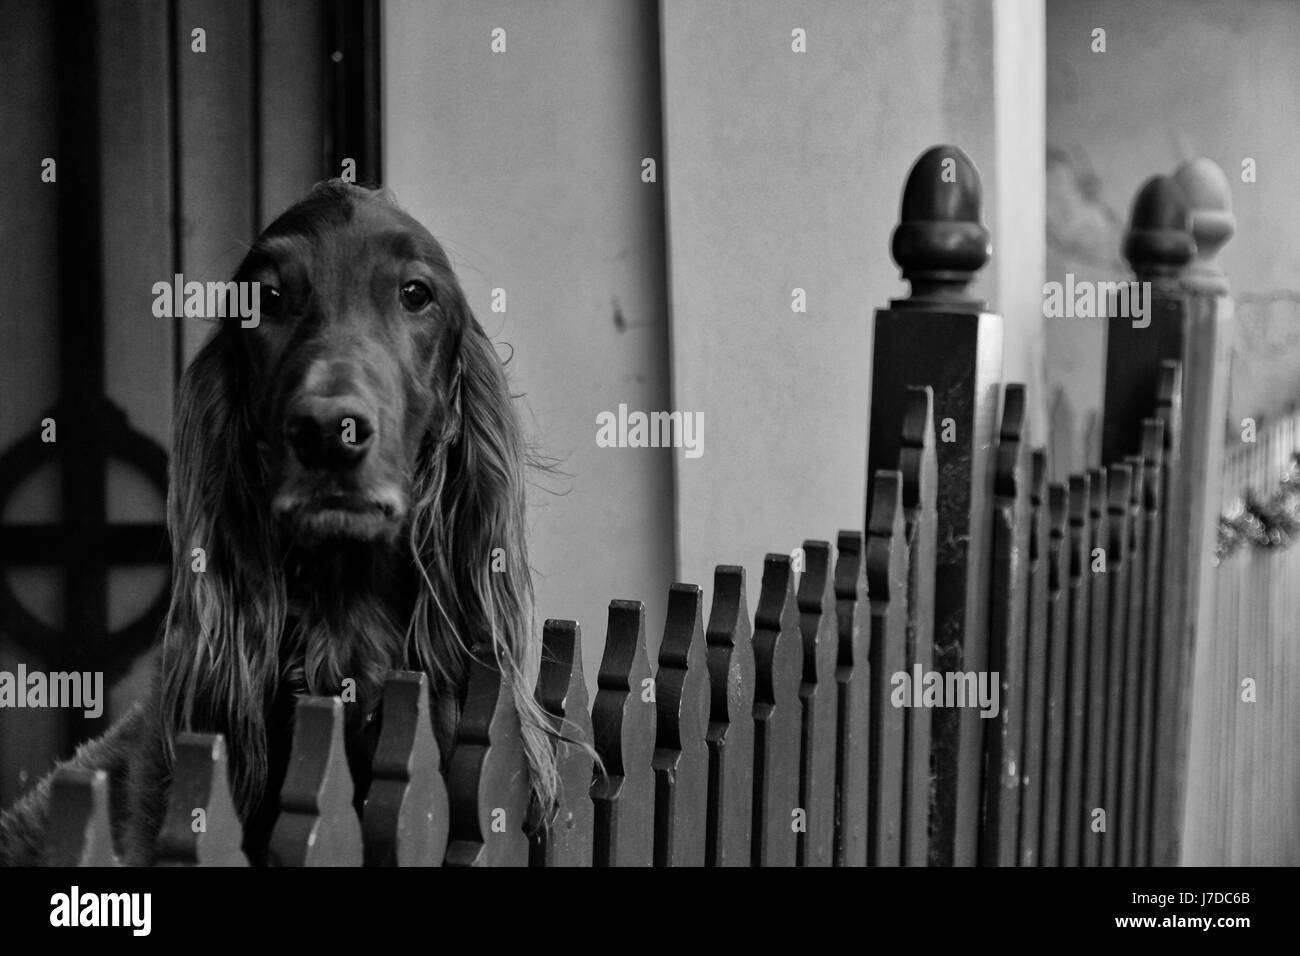 A dog portrait in black and white - Stock Image